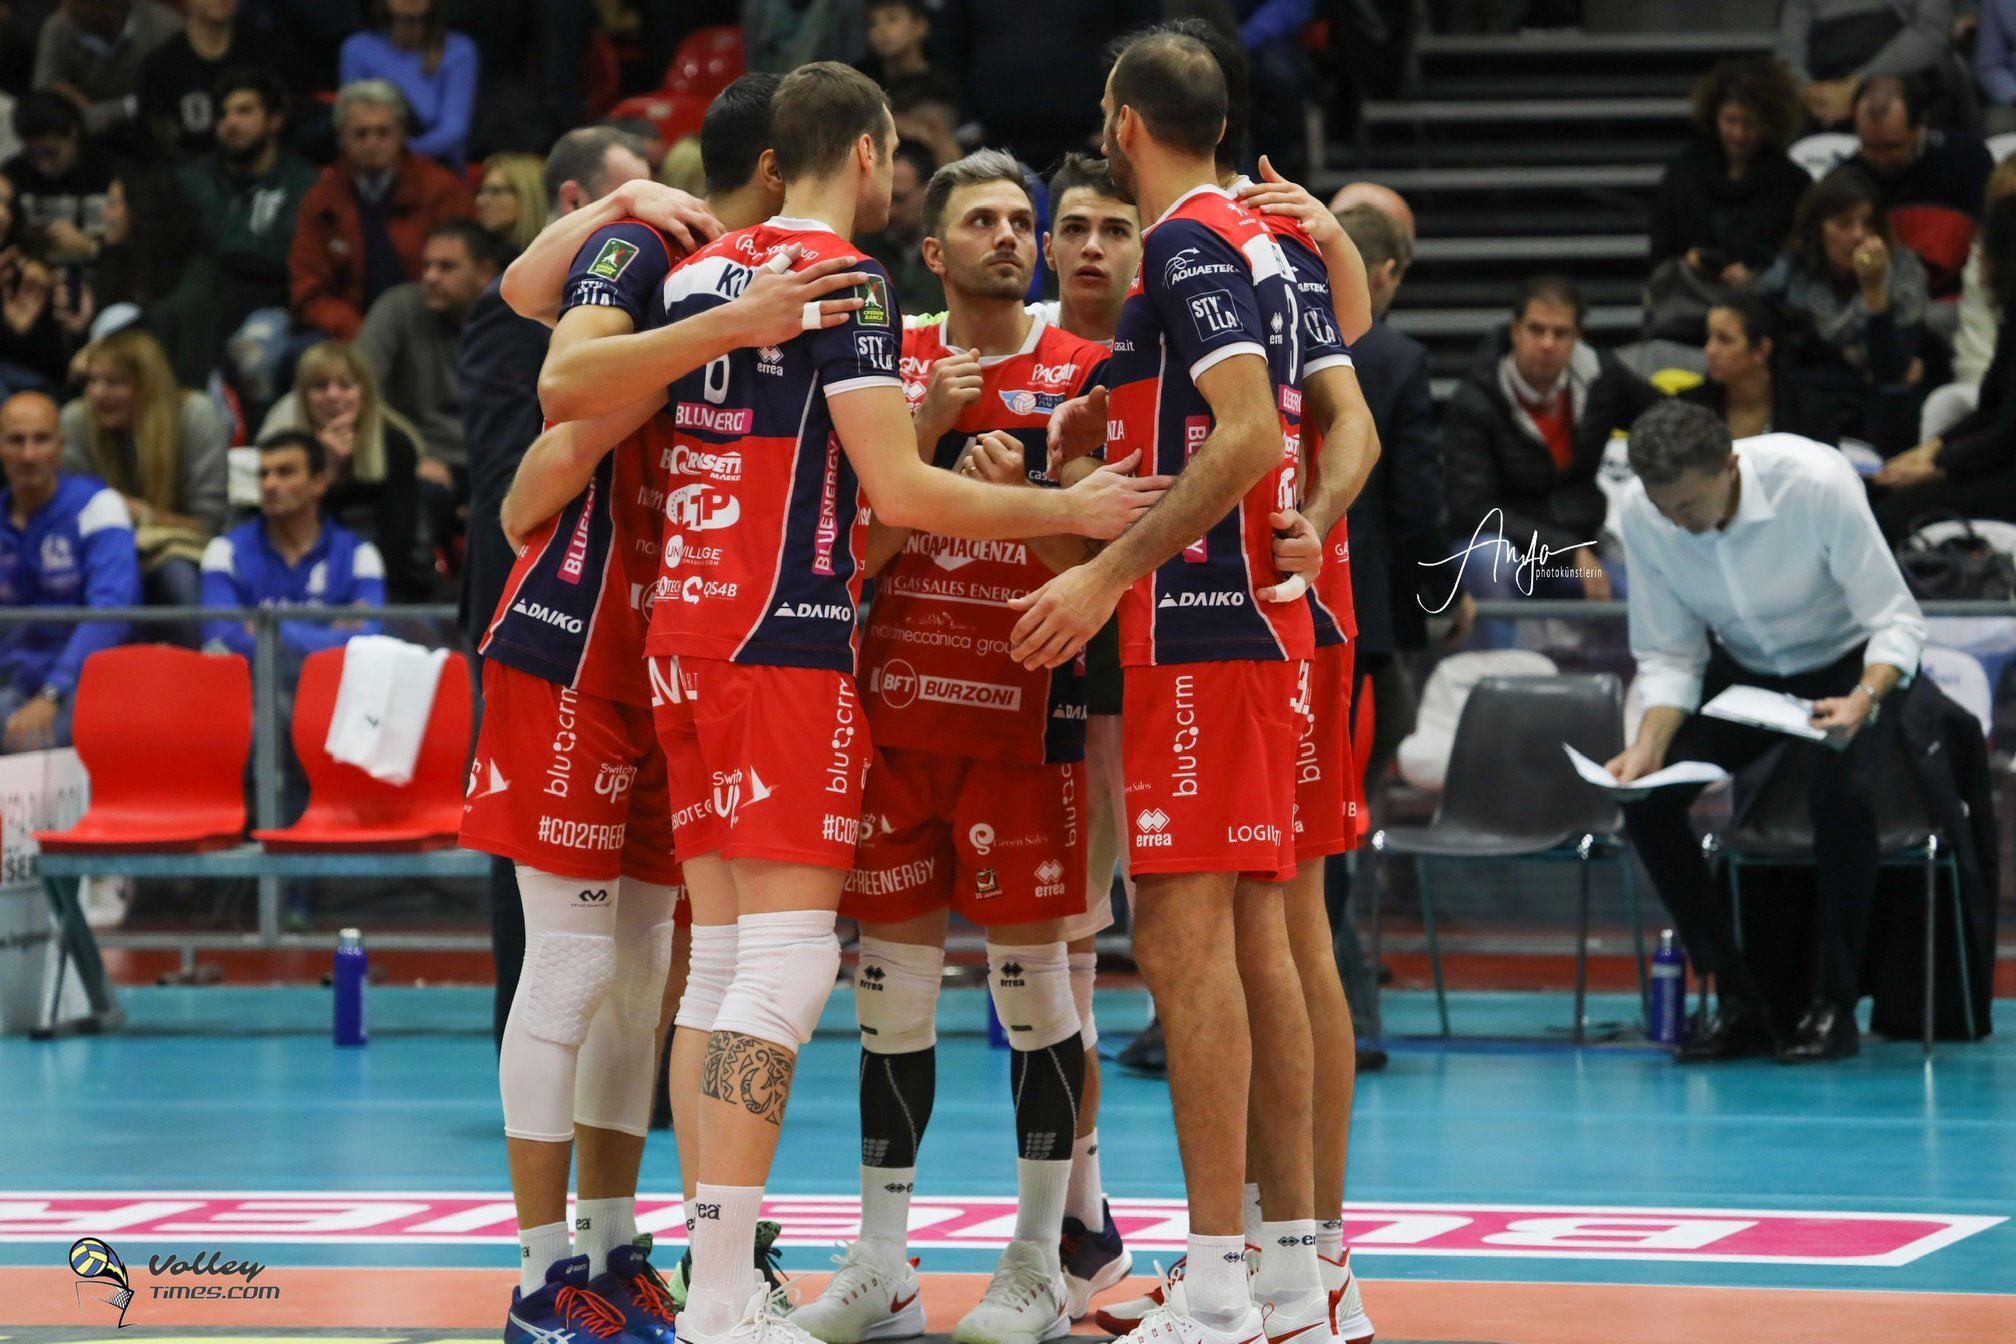 Italy: Fifth win at tie break for Piacenza in the advance of Round 12